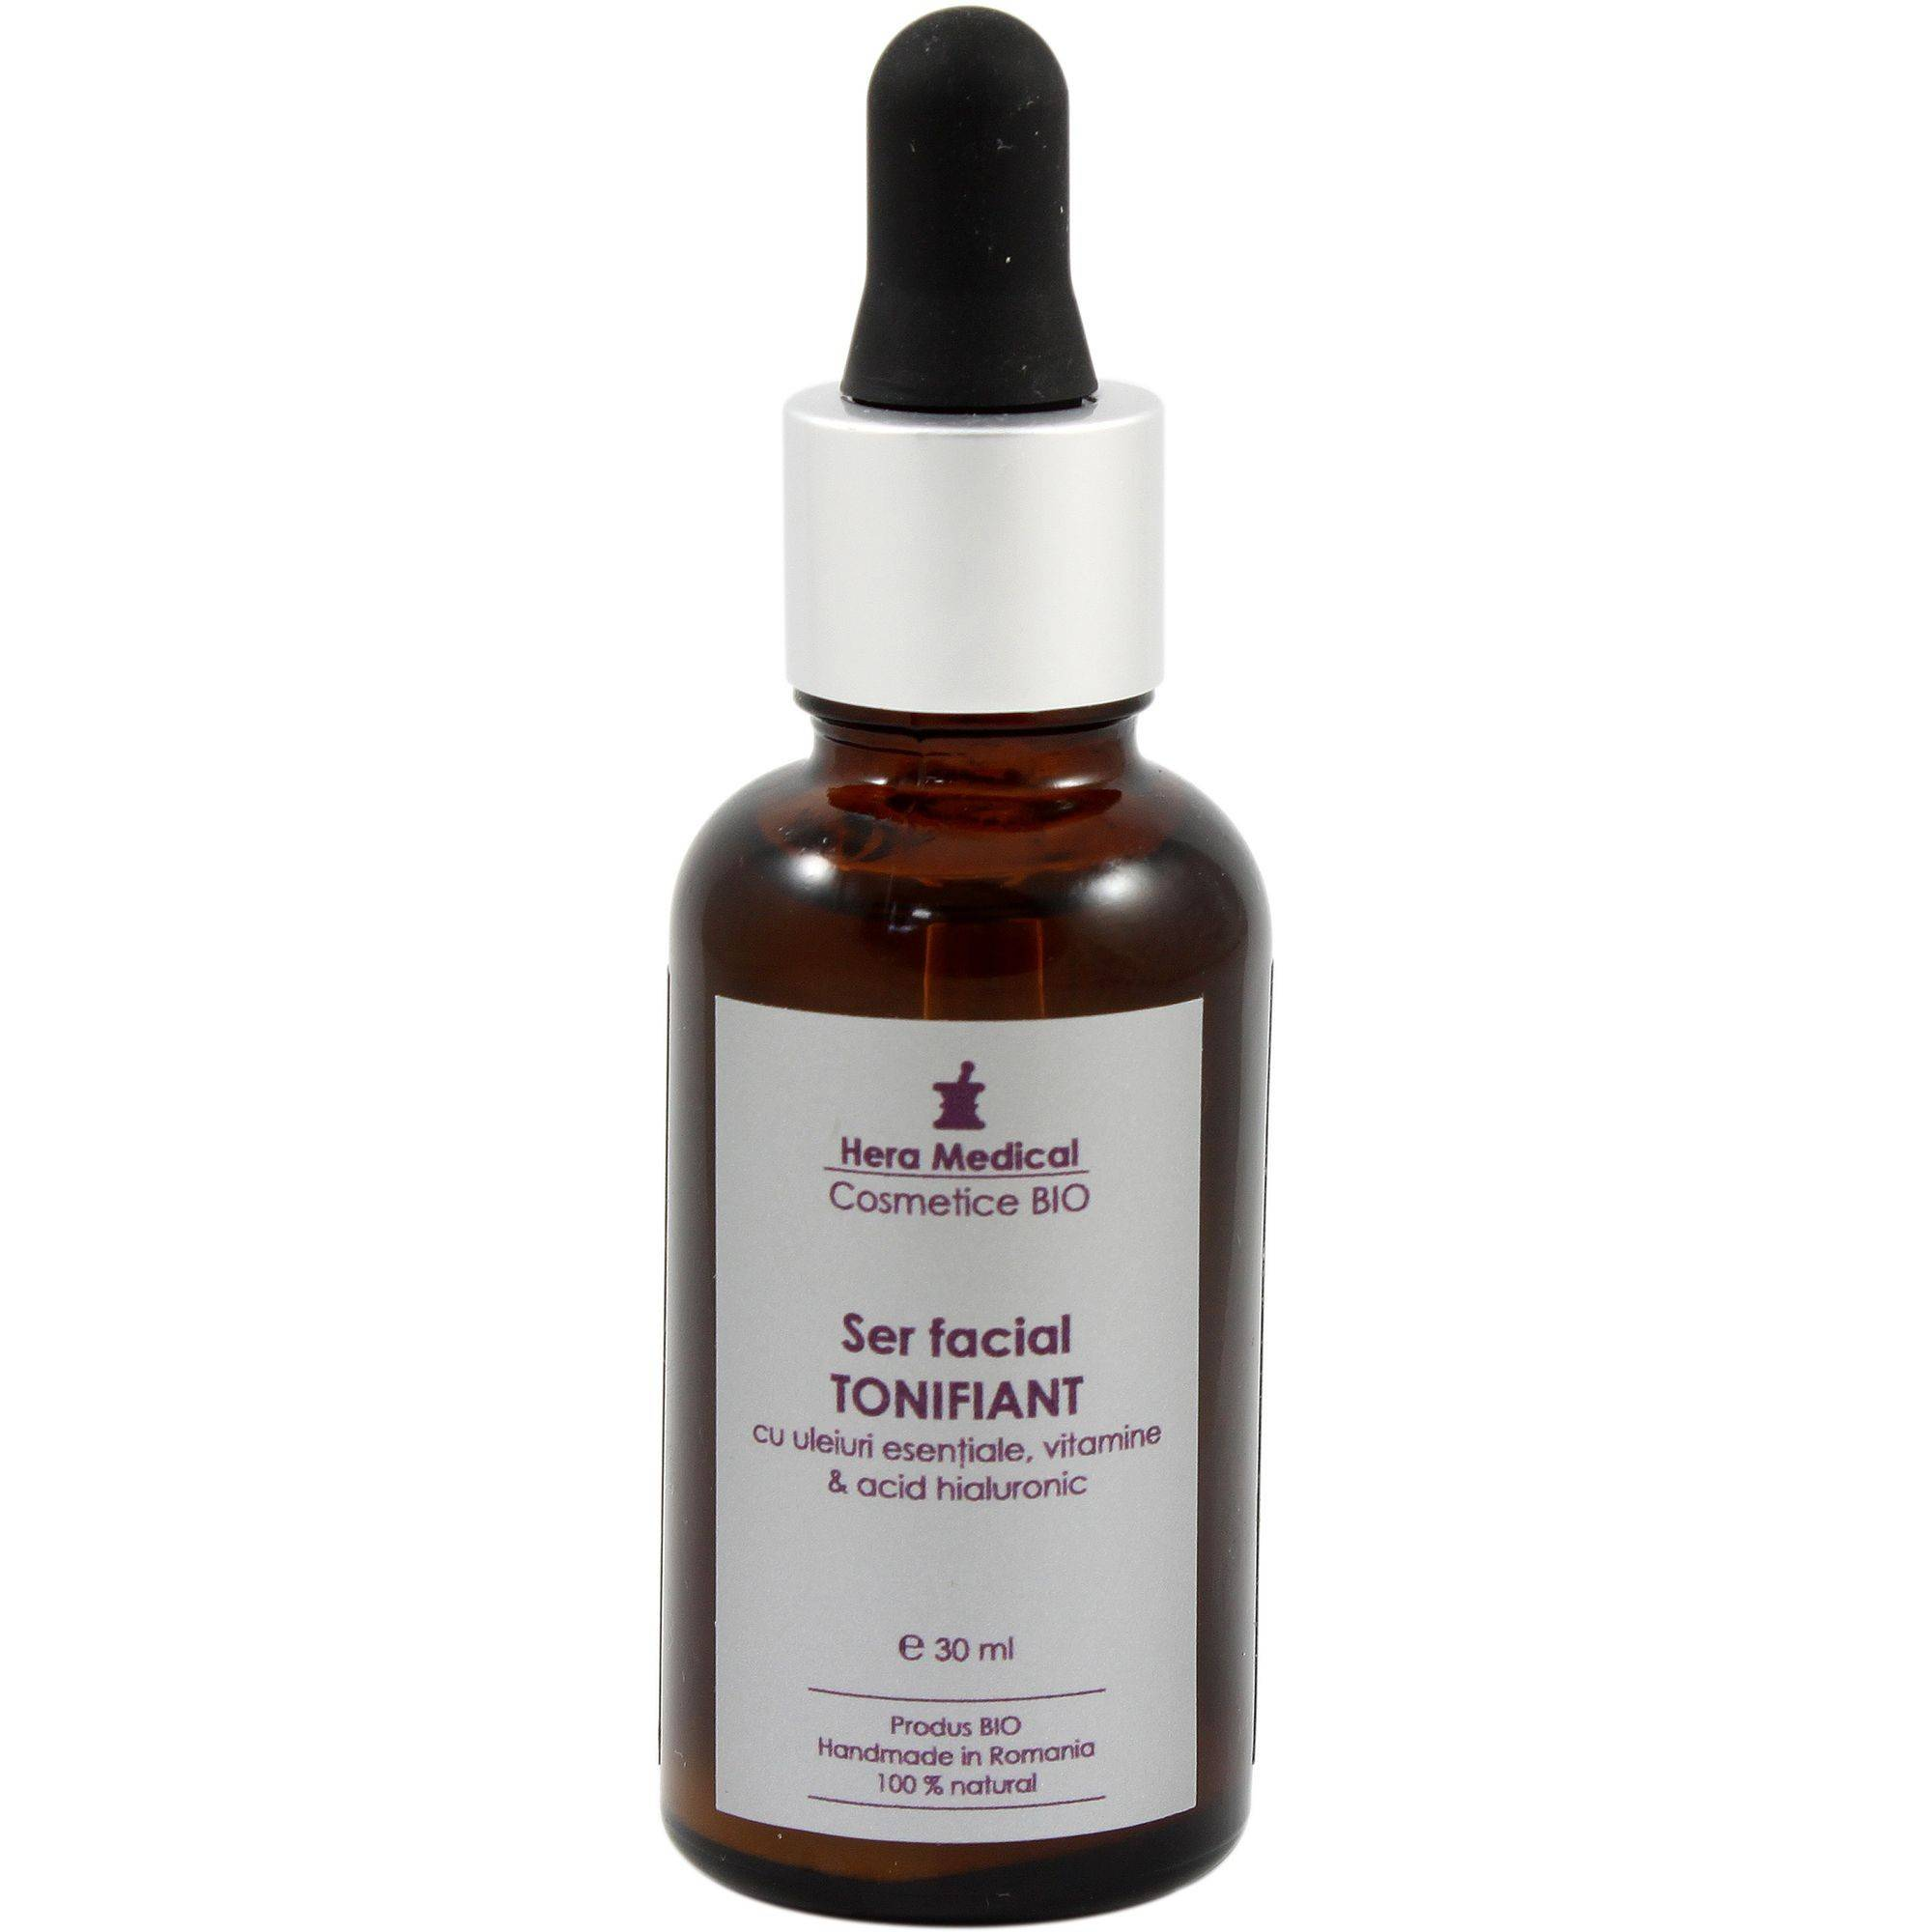 SER FACIAL ANTI-AGING TONIFIANT 30 ML